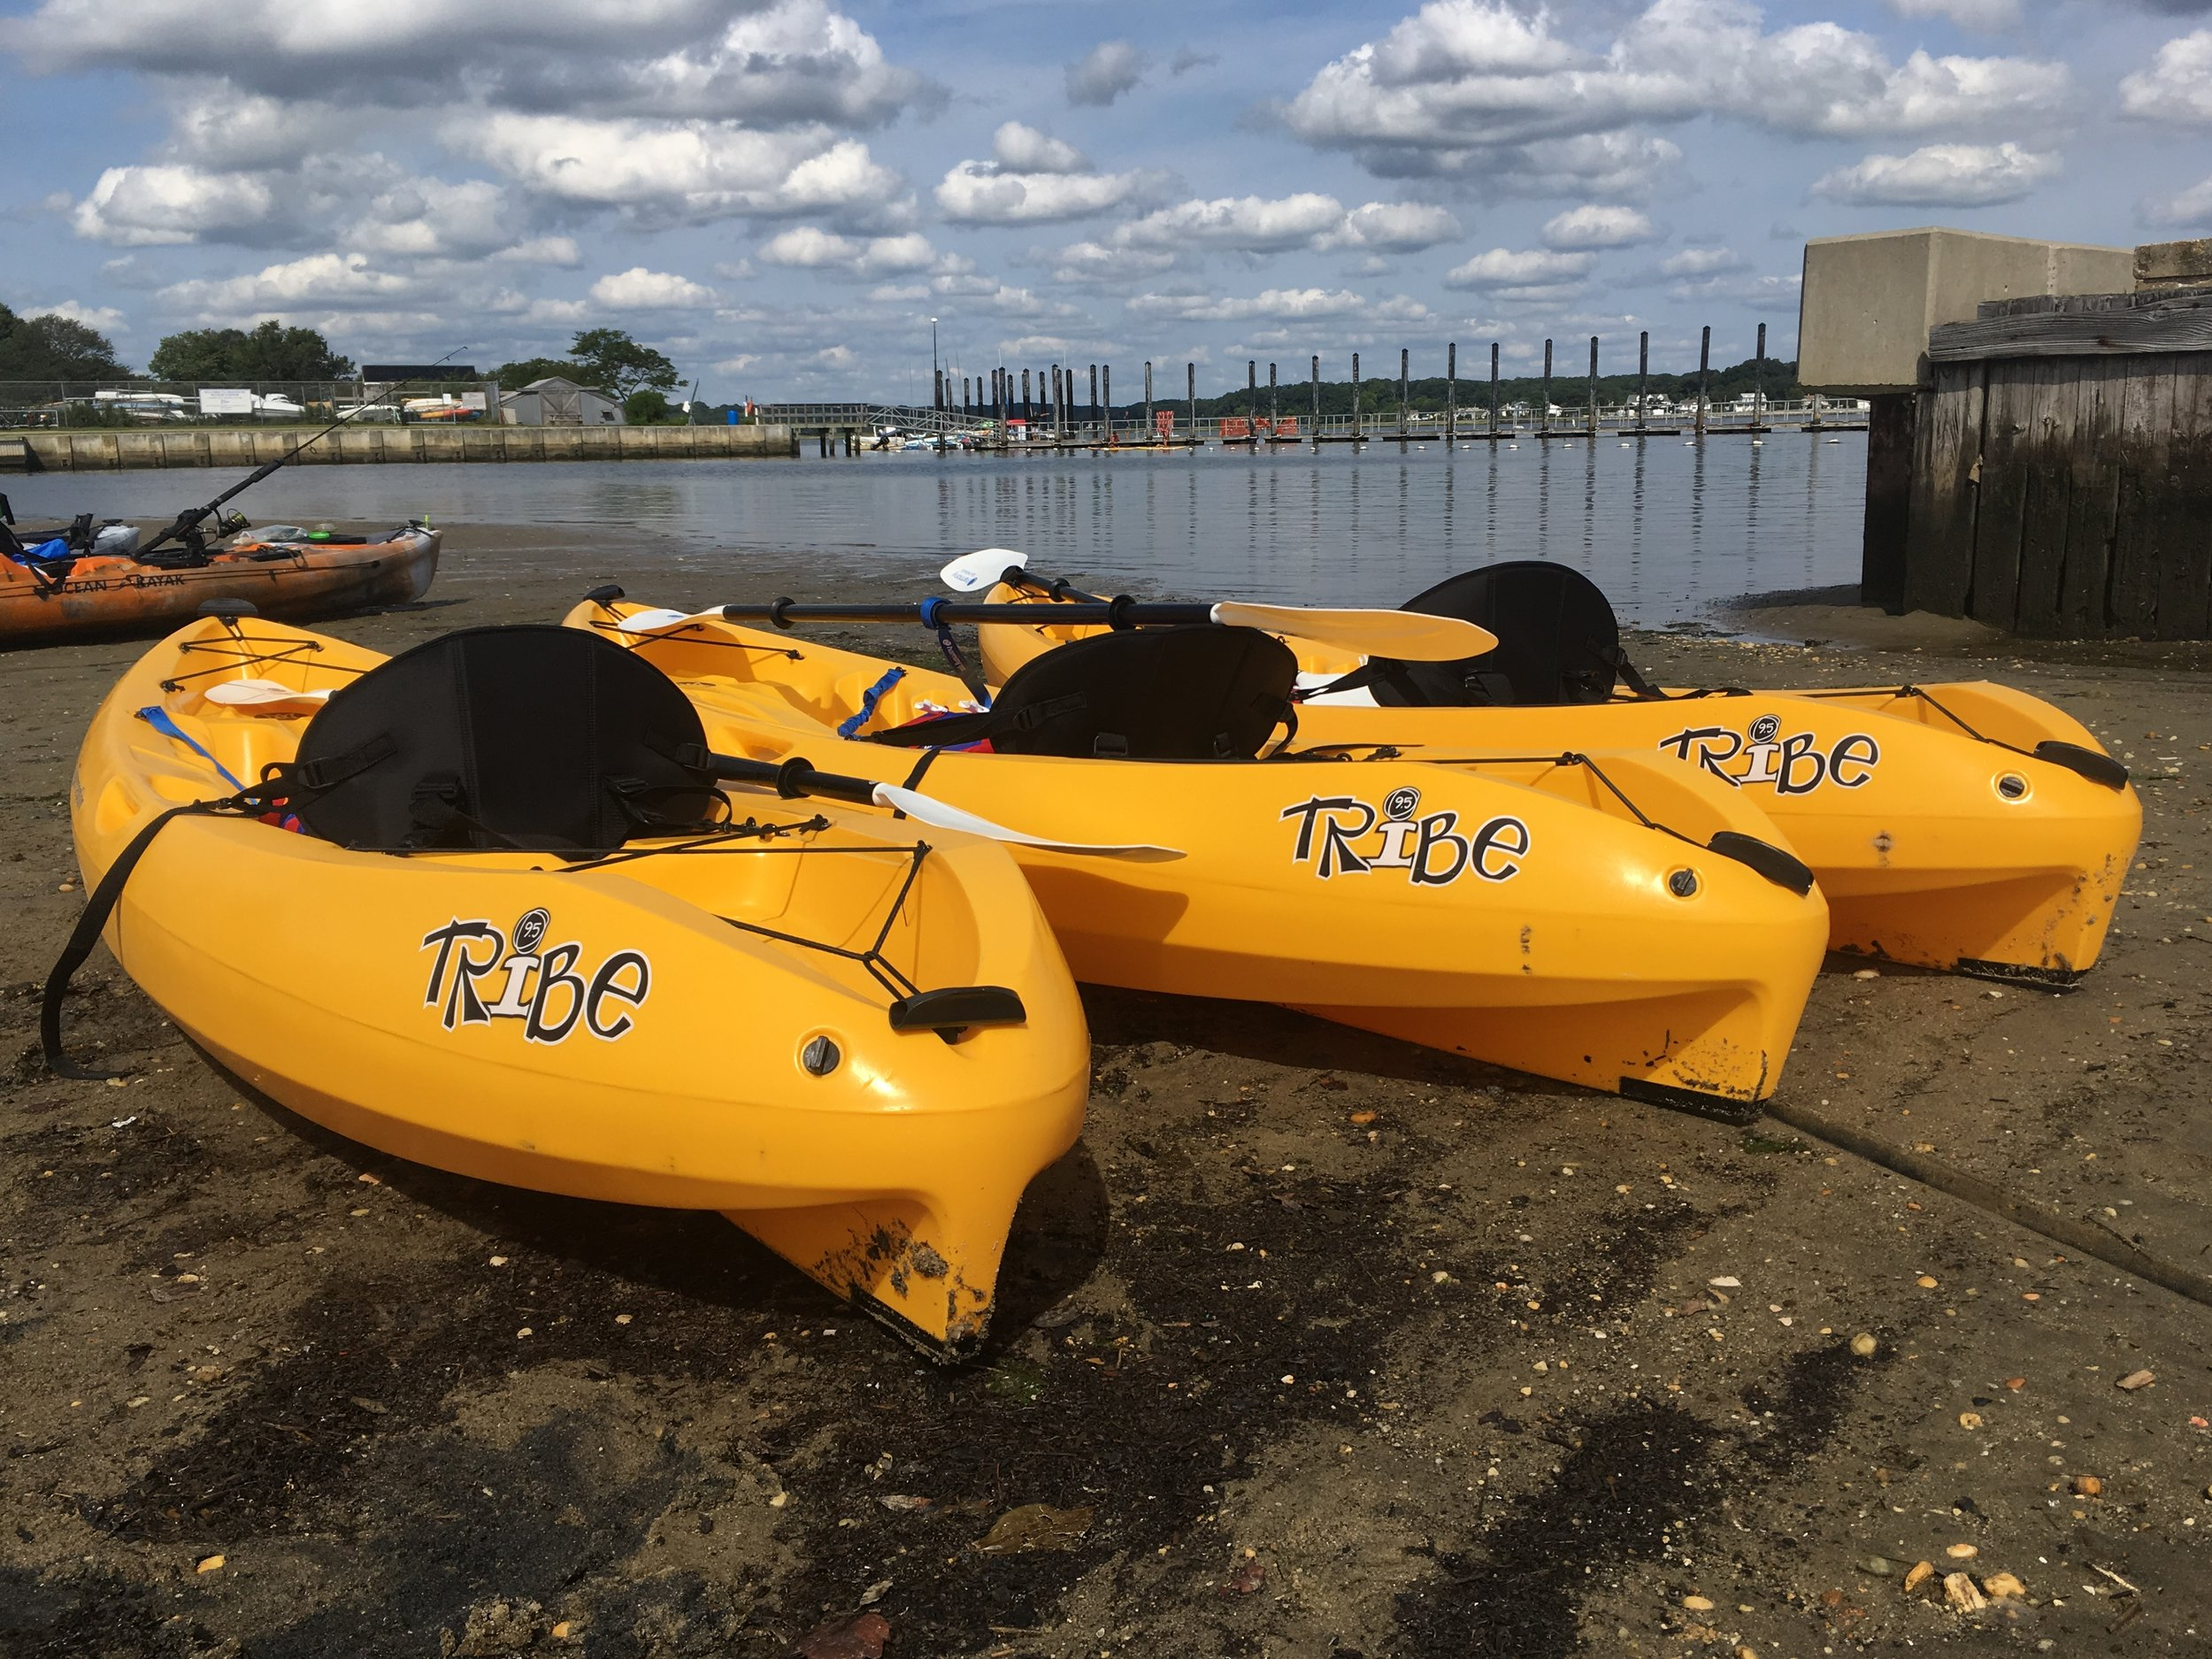 Schedule & events - Check out our weekend schedule and find out about our upcoming sunset, sunrise, full moon and eco-tour guided paddles as well as American Canoe Association skills courses.